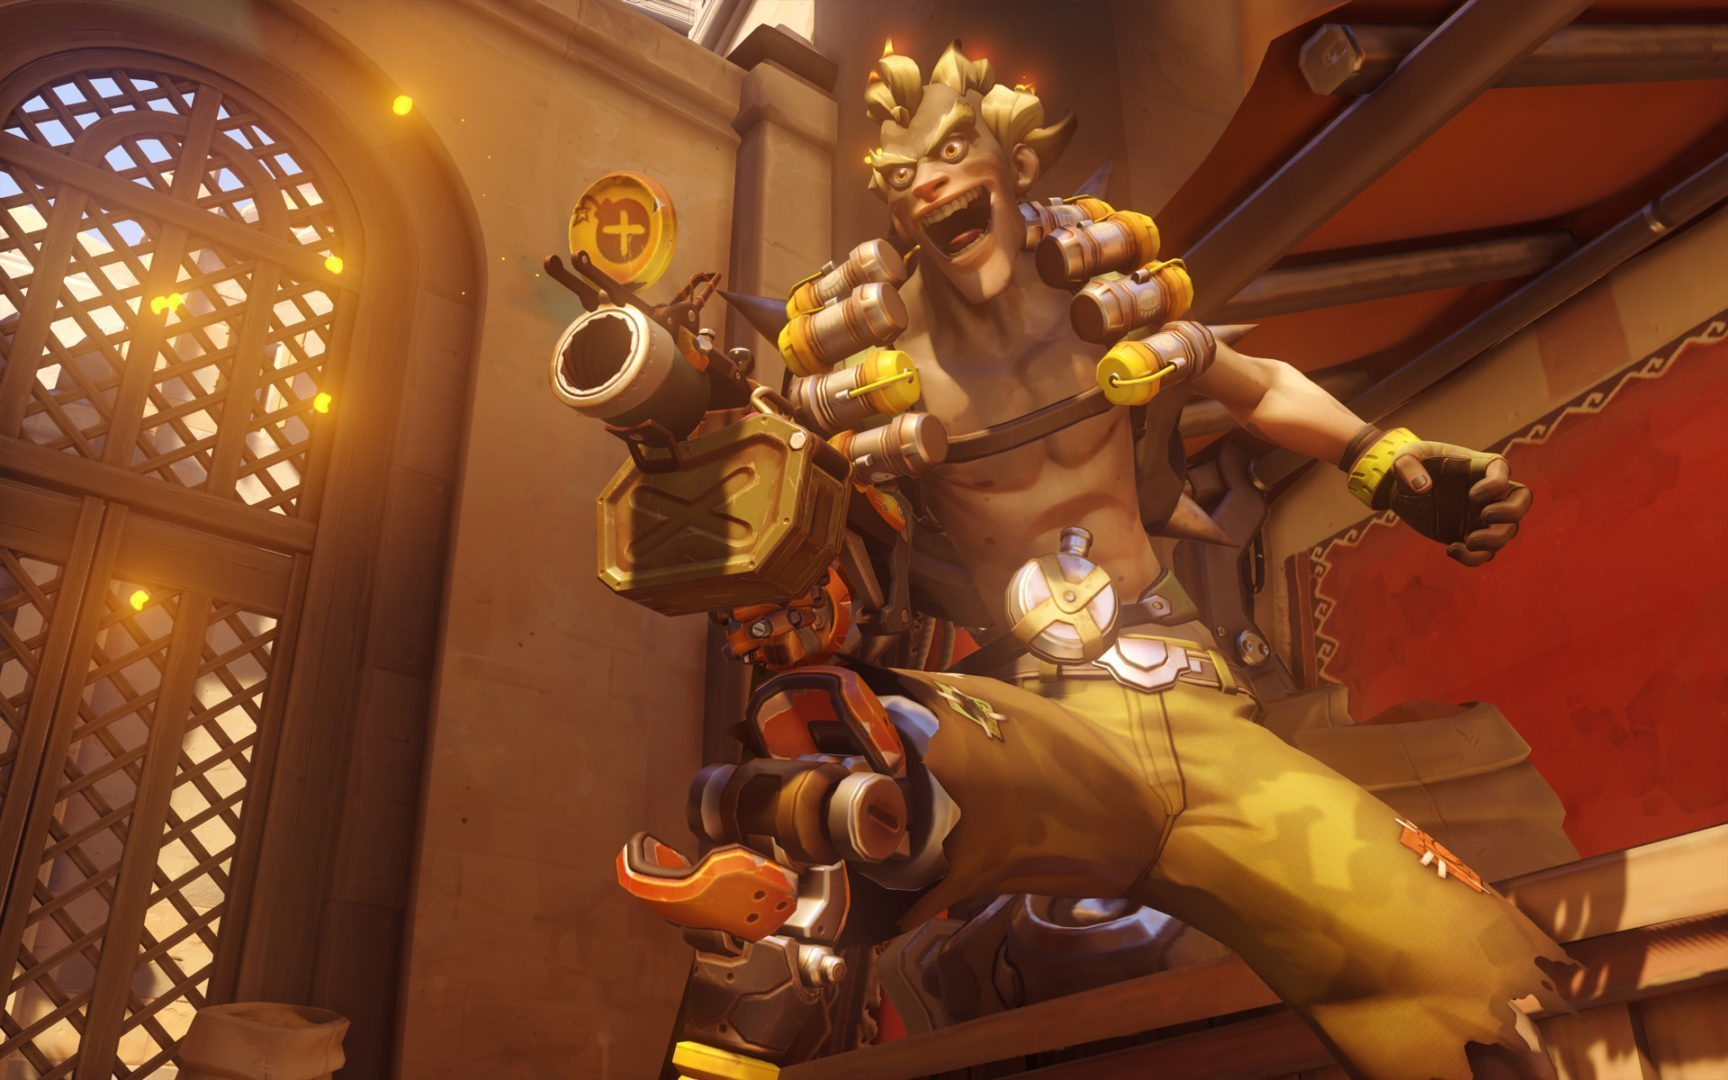 Blizzard will reveal new Overwatch map at GamesCom next week